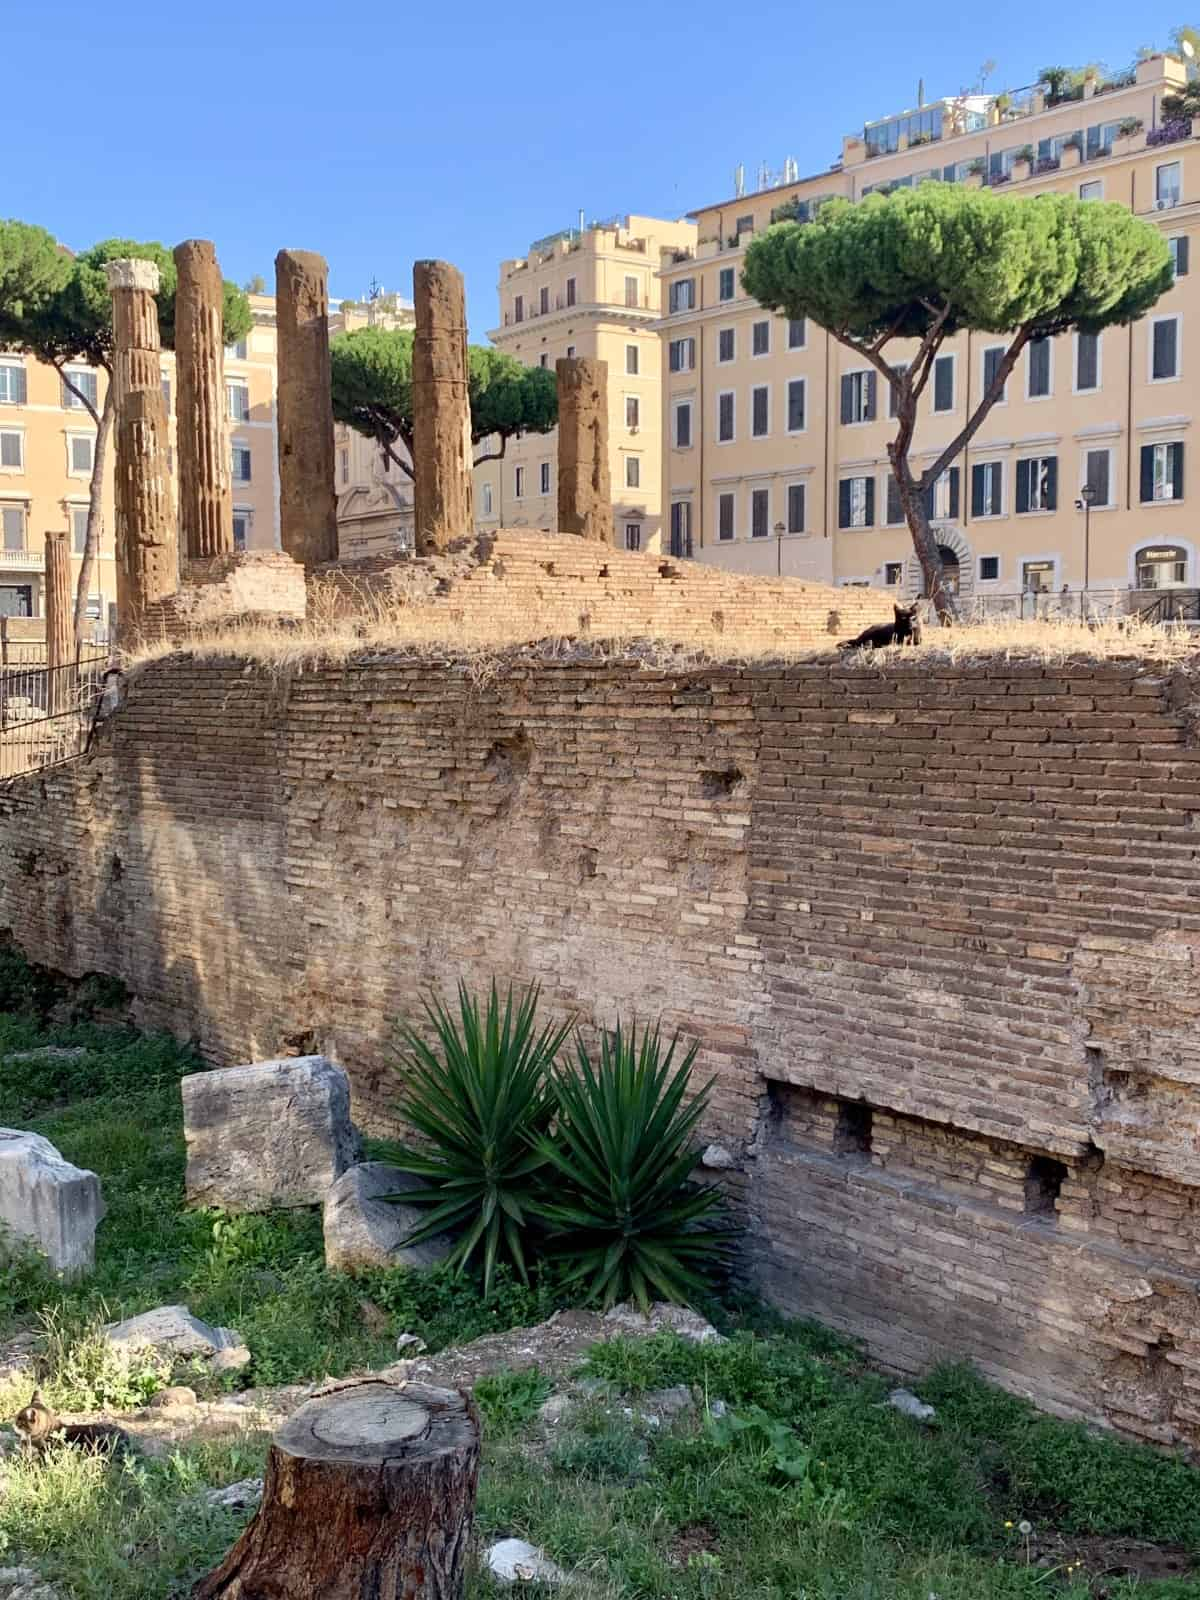 Largo di Argentina...come see the kitties and ruins - what to do in Rome